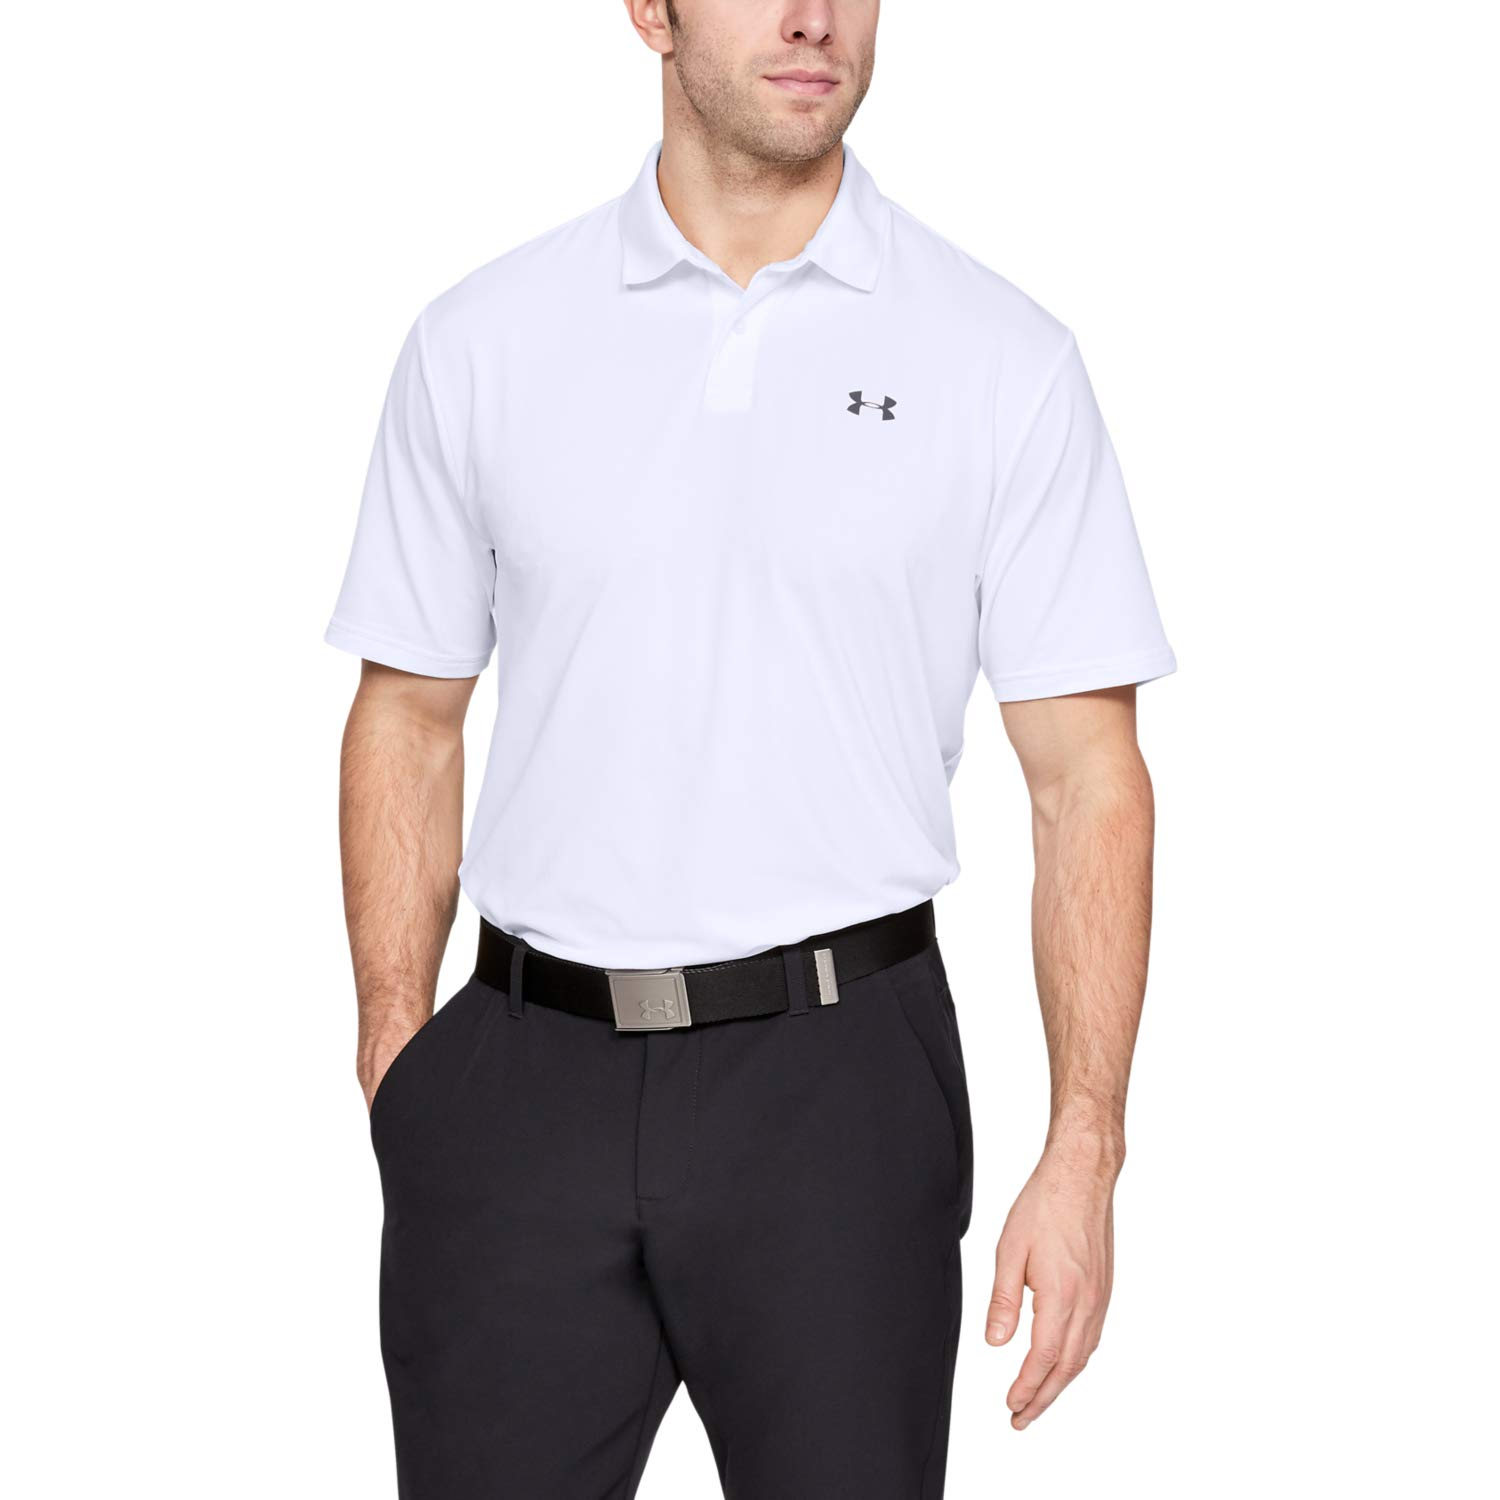 Under Armour Men's Performance Polo 2.0, White//Pitch Gray, 3X-Large by Under Armour